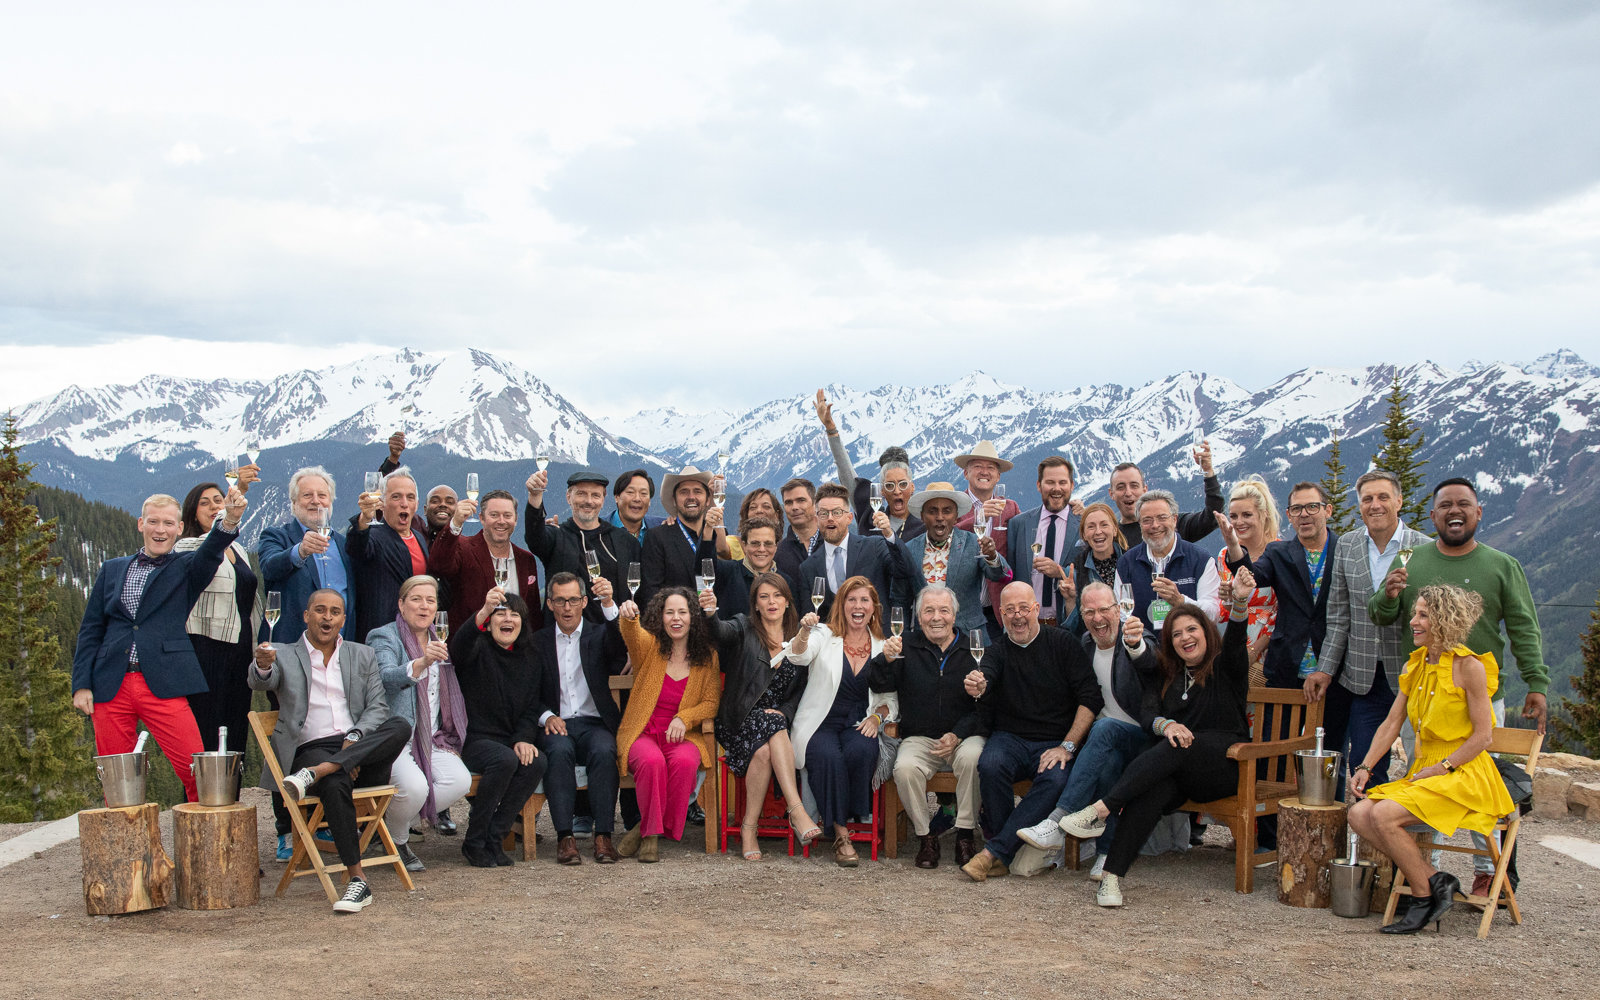 2019 FOOD & WINE Classic in Aspen